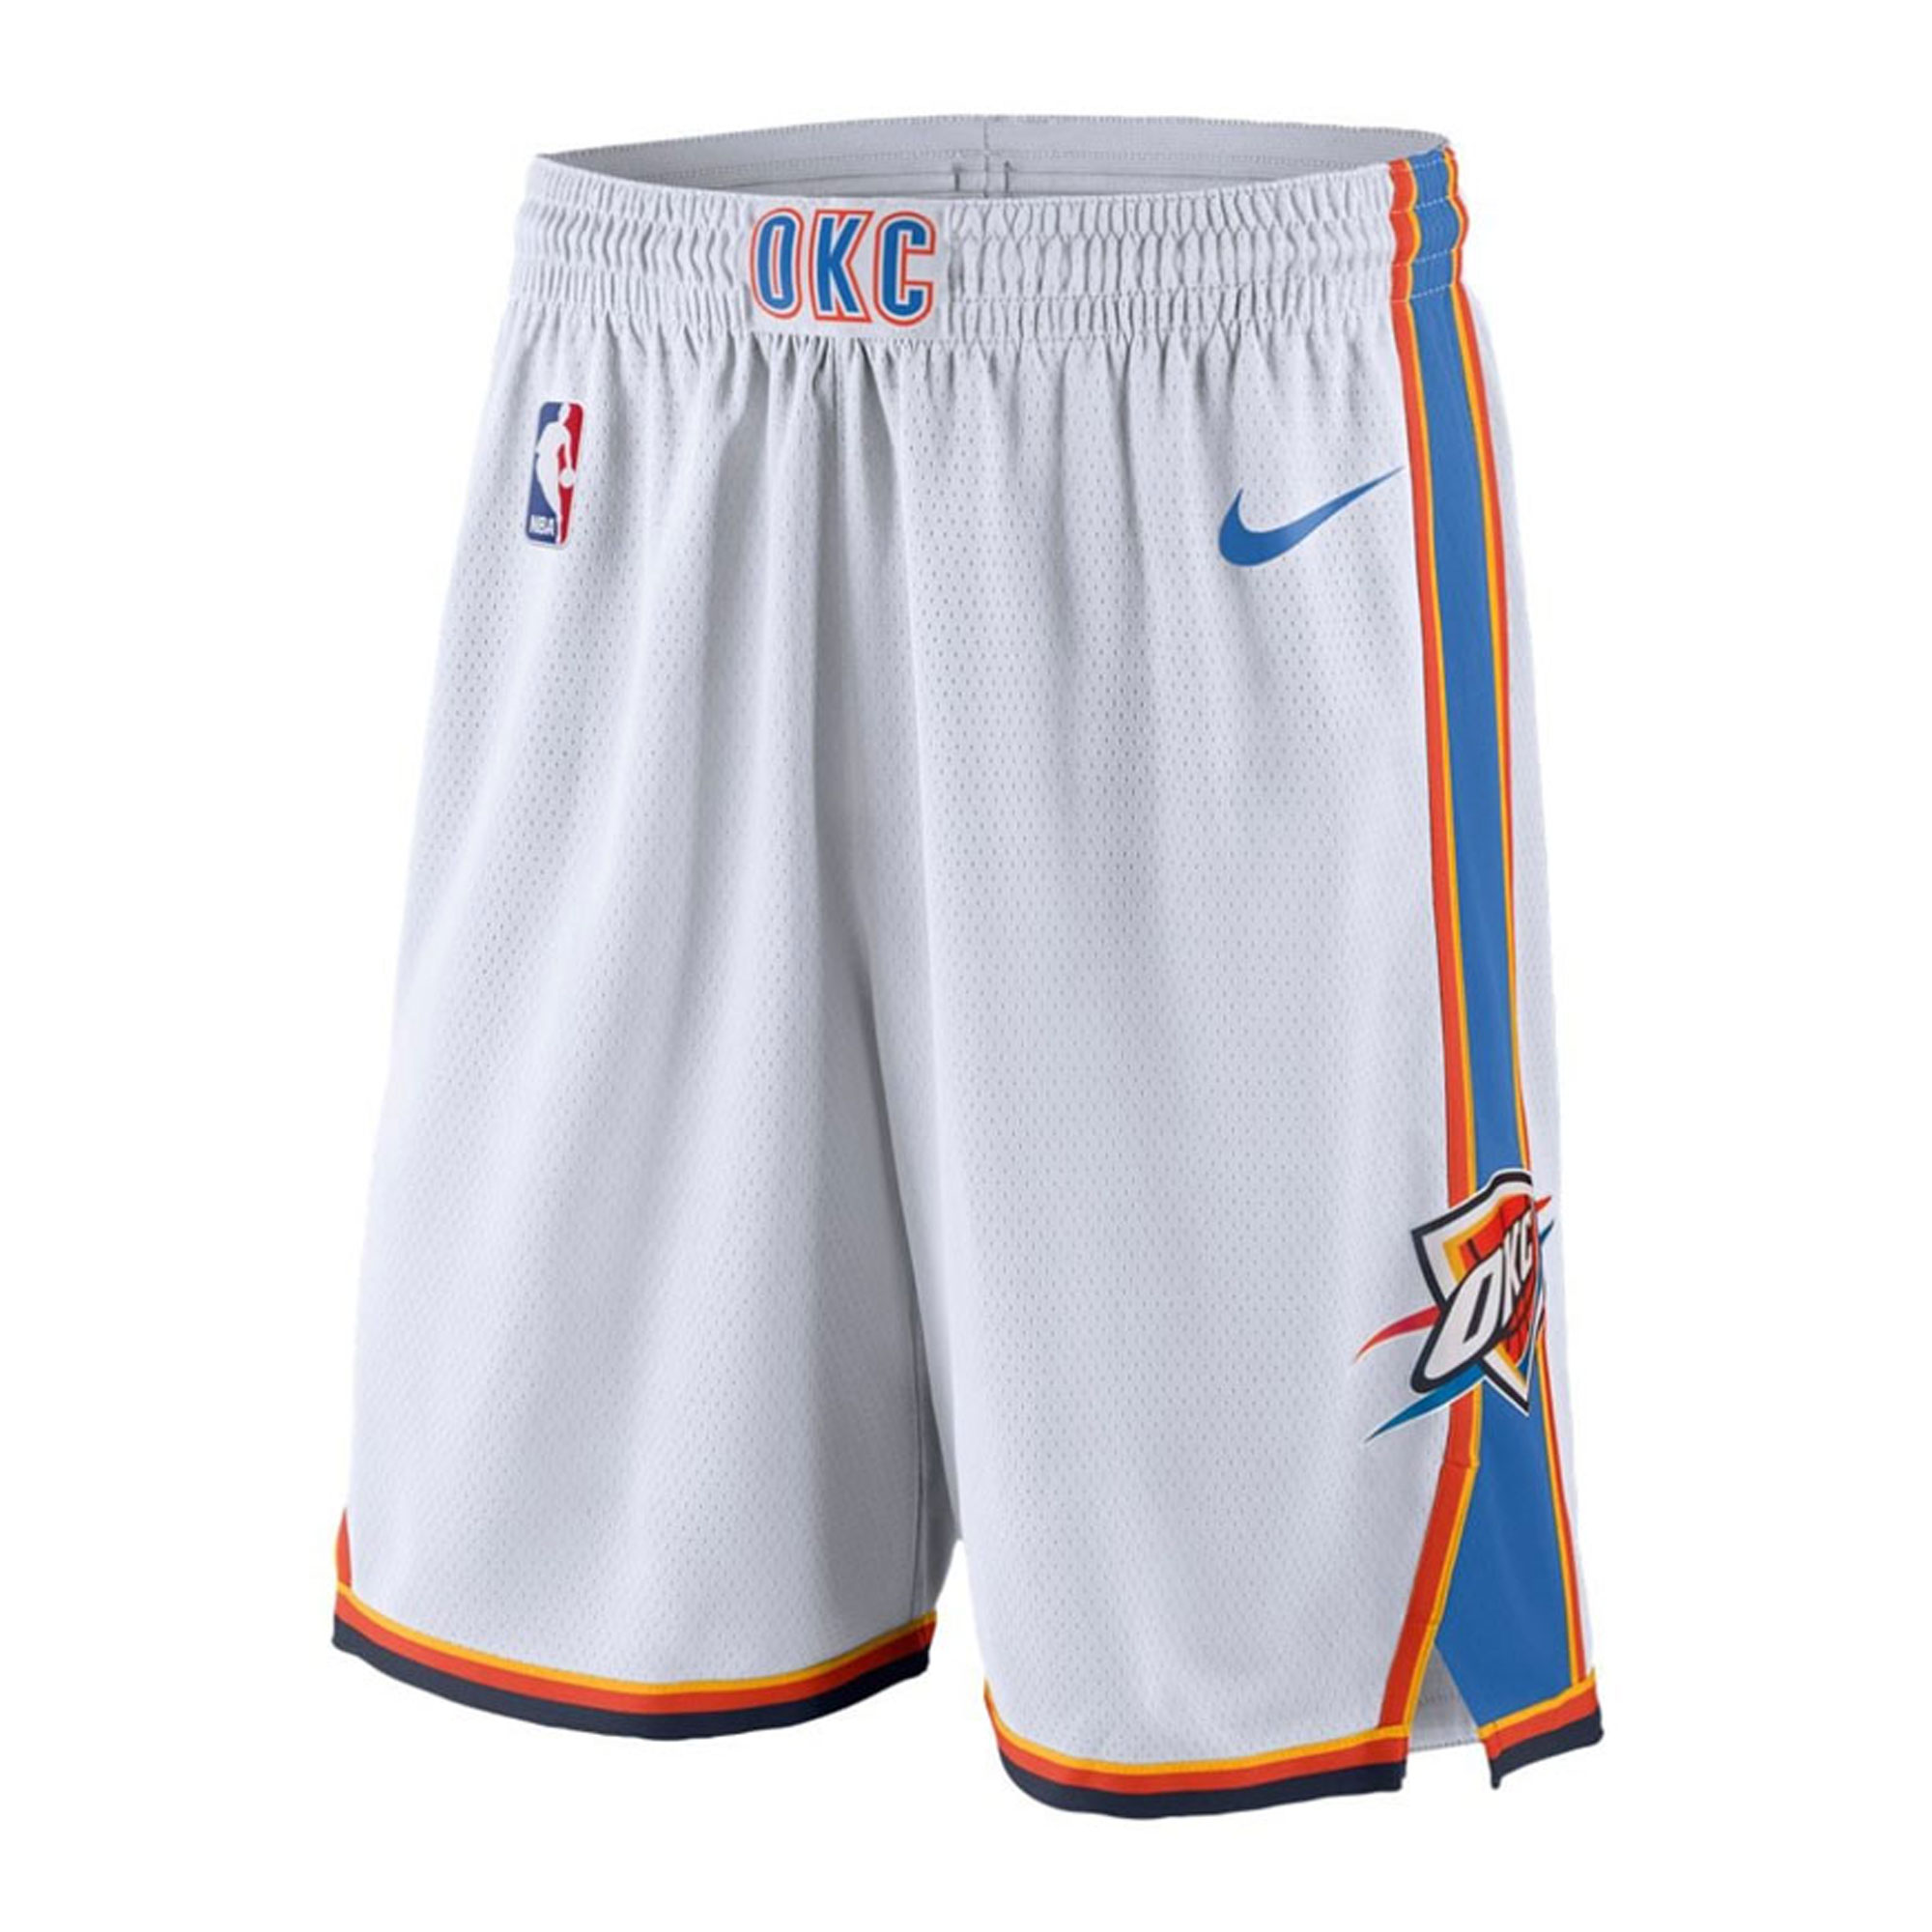 Oklahoma City  Short (SRT-WHT-OKC)